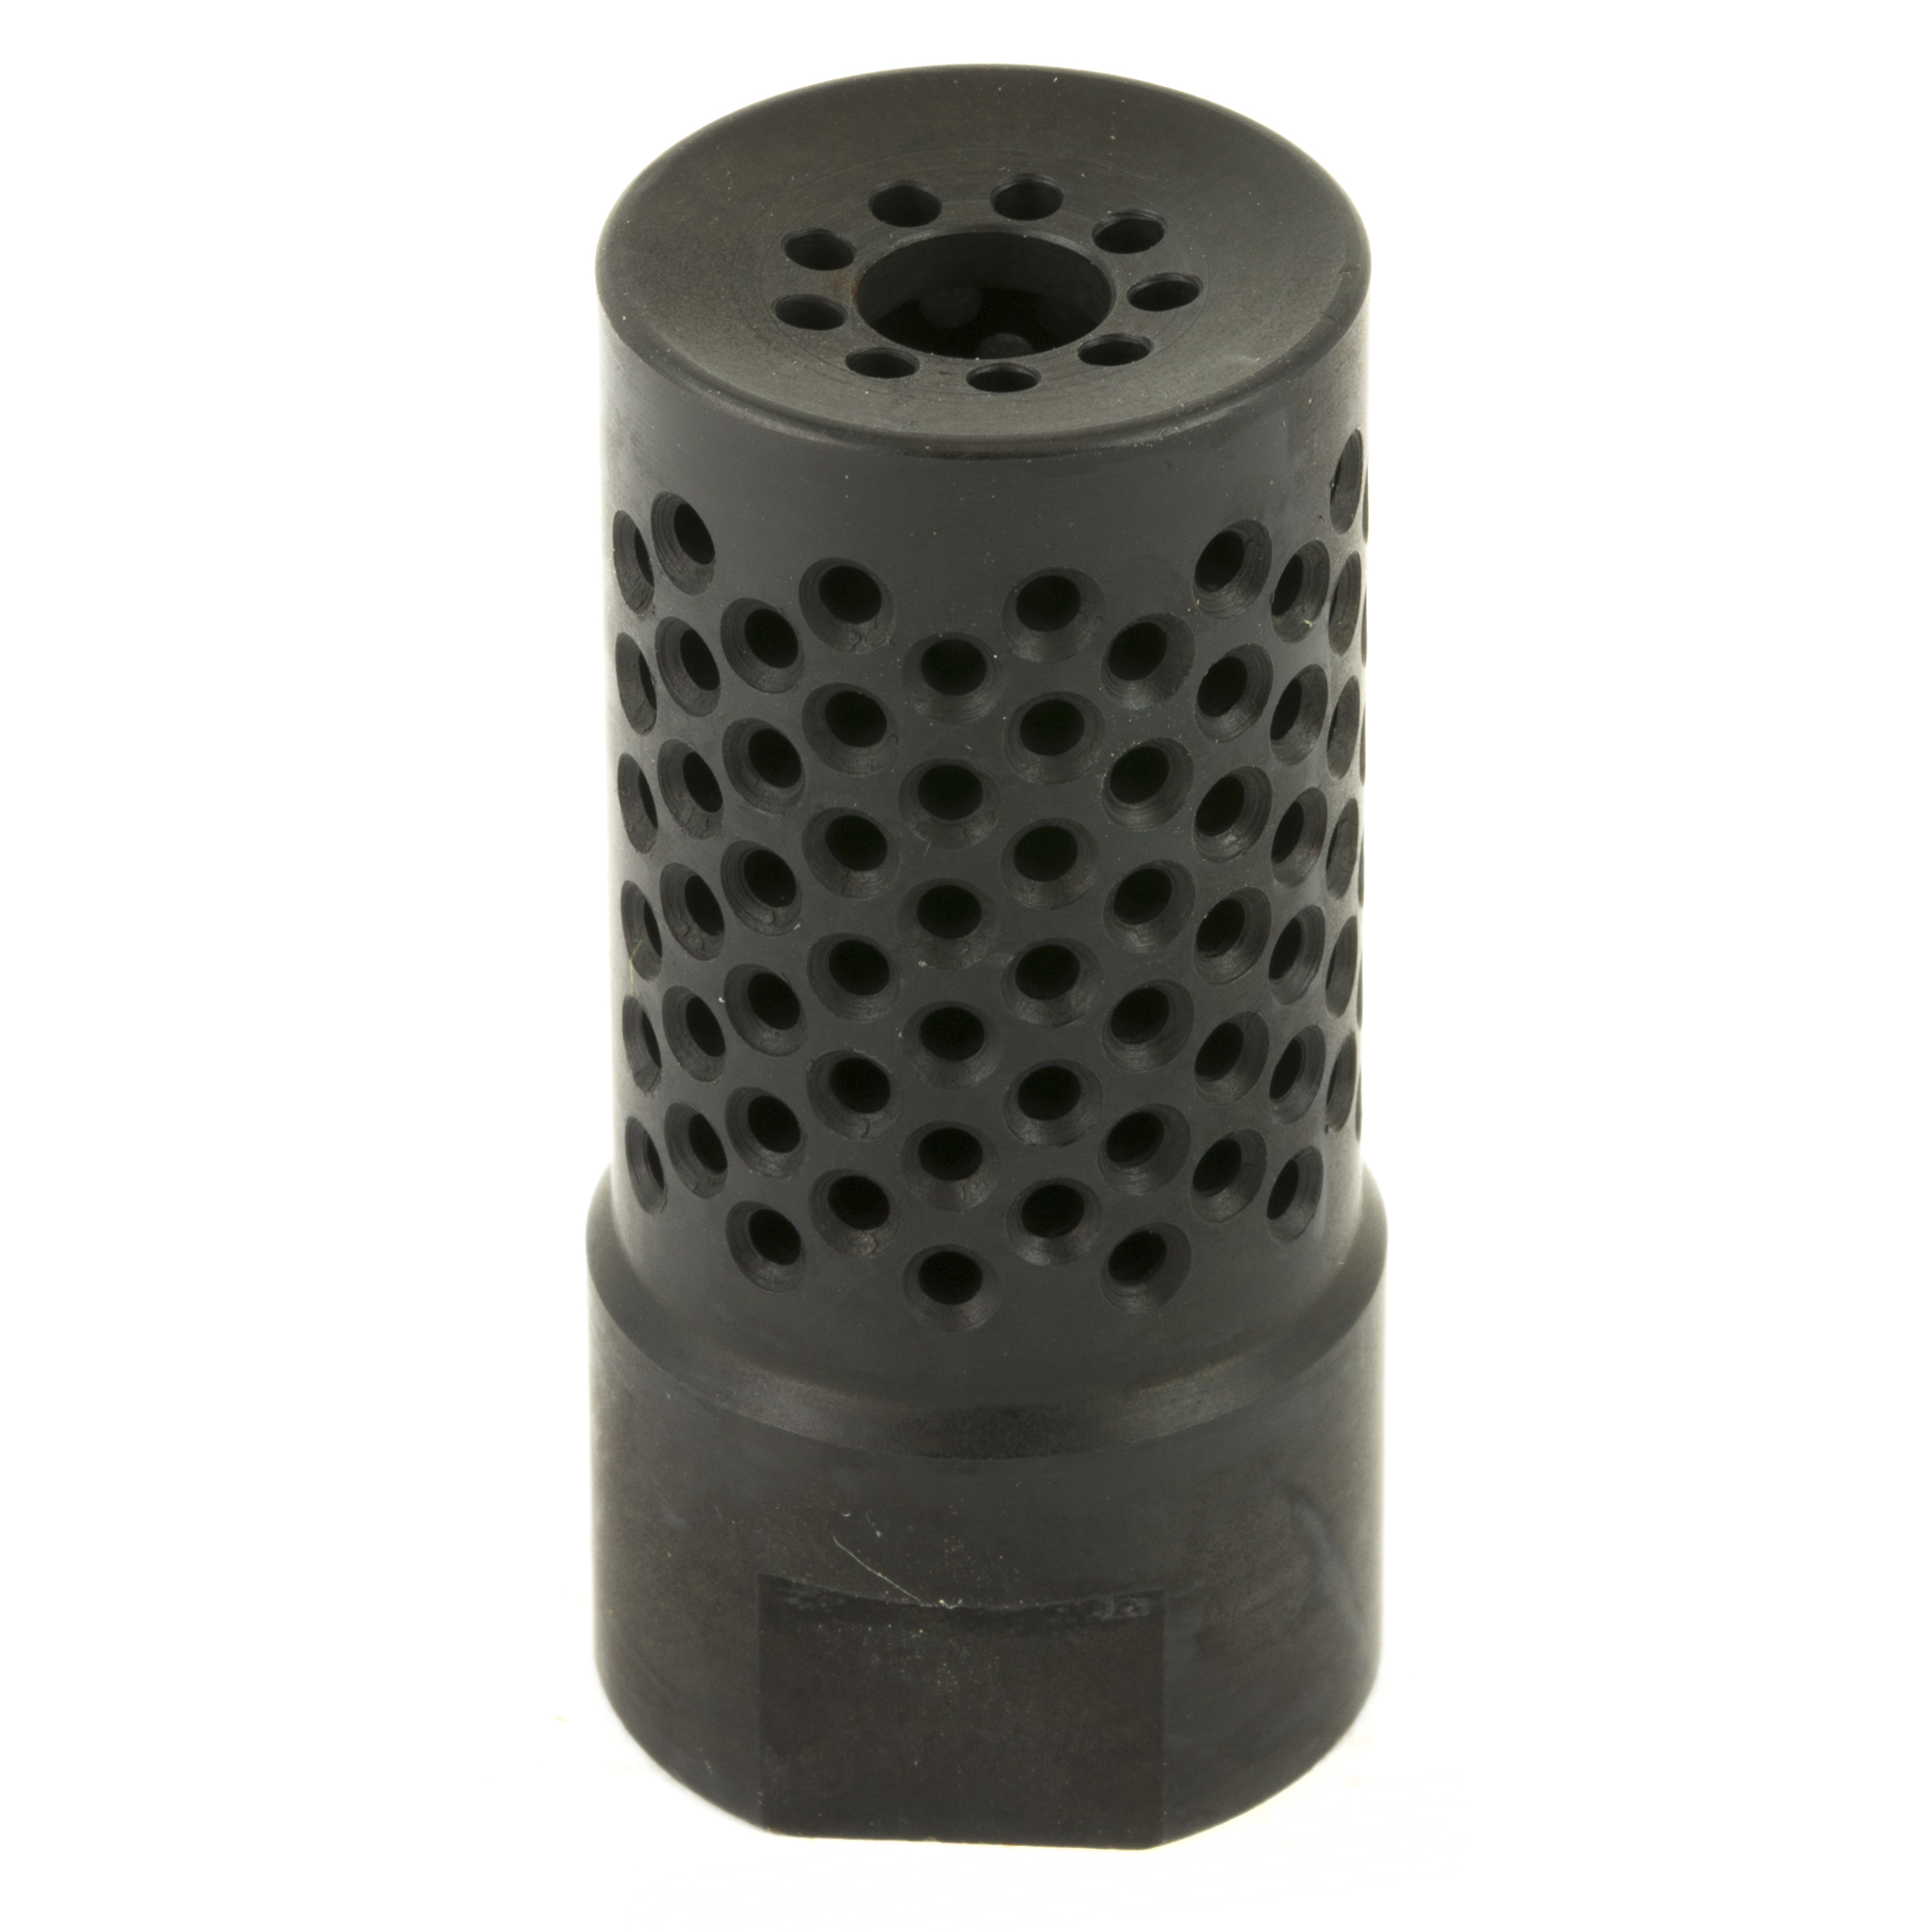 "The Spike's Tactical Dynacomp Short is a 5.56 muzzle device designed to reduce recoil impulse and muzzle climb to provide faster follow up shots. The Dynacomp accomplishes this by balancing the direction of the blast along the vertical (upward) and perpendicular planes of the muzzle to lower muzzle rise"" while the end of the device restricts forward energy to reduce parallel recoil. The ports on the Dynacomp are ball dimpled for smooth expansion of gases and rapid heat dissipation. The entire device is nitride treated to enhance these characteristics and provide a slick black finish."